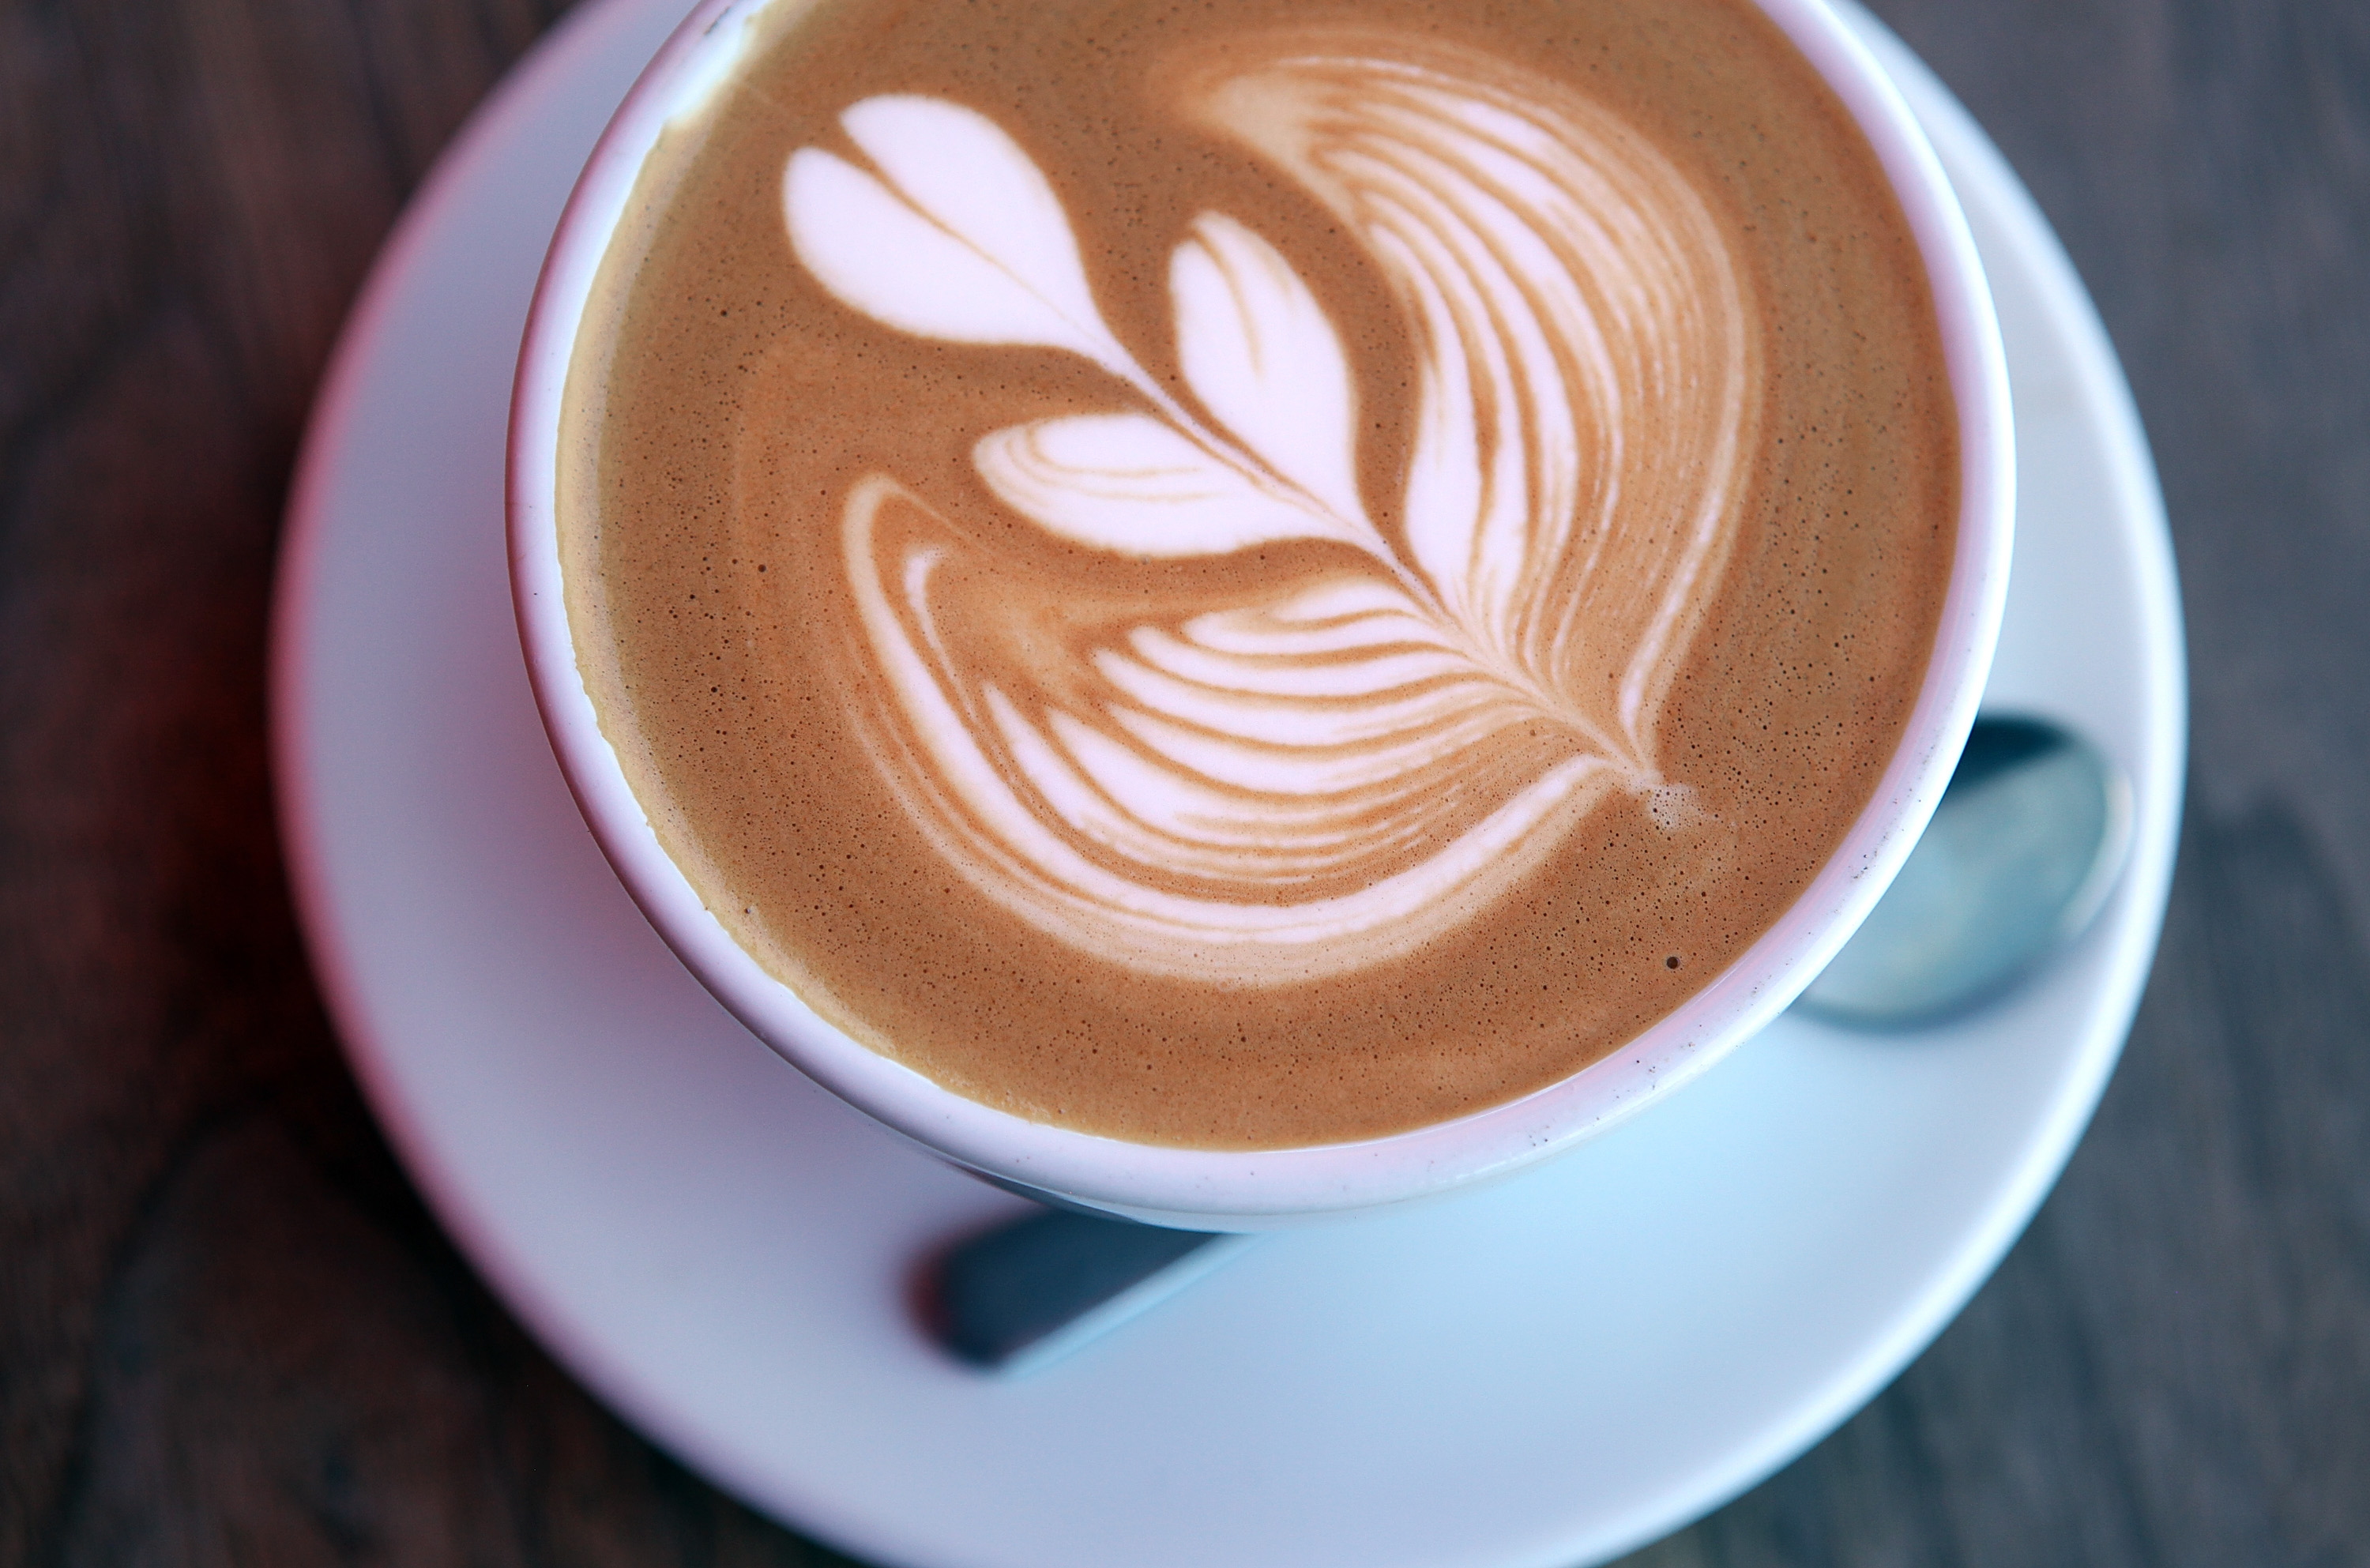 Study: Coffee consumption tied to diminished diabetes risk